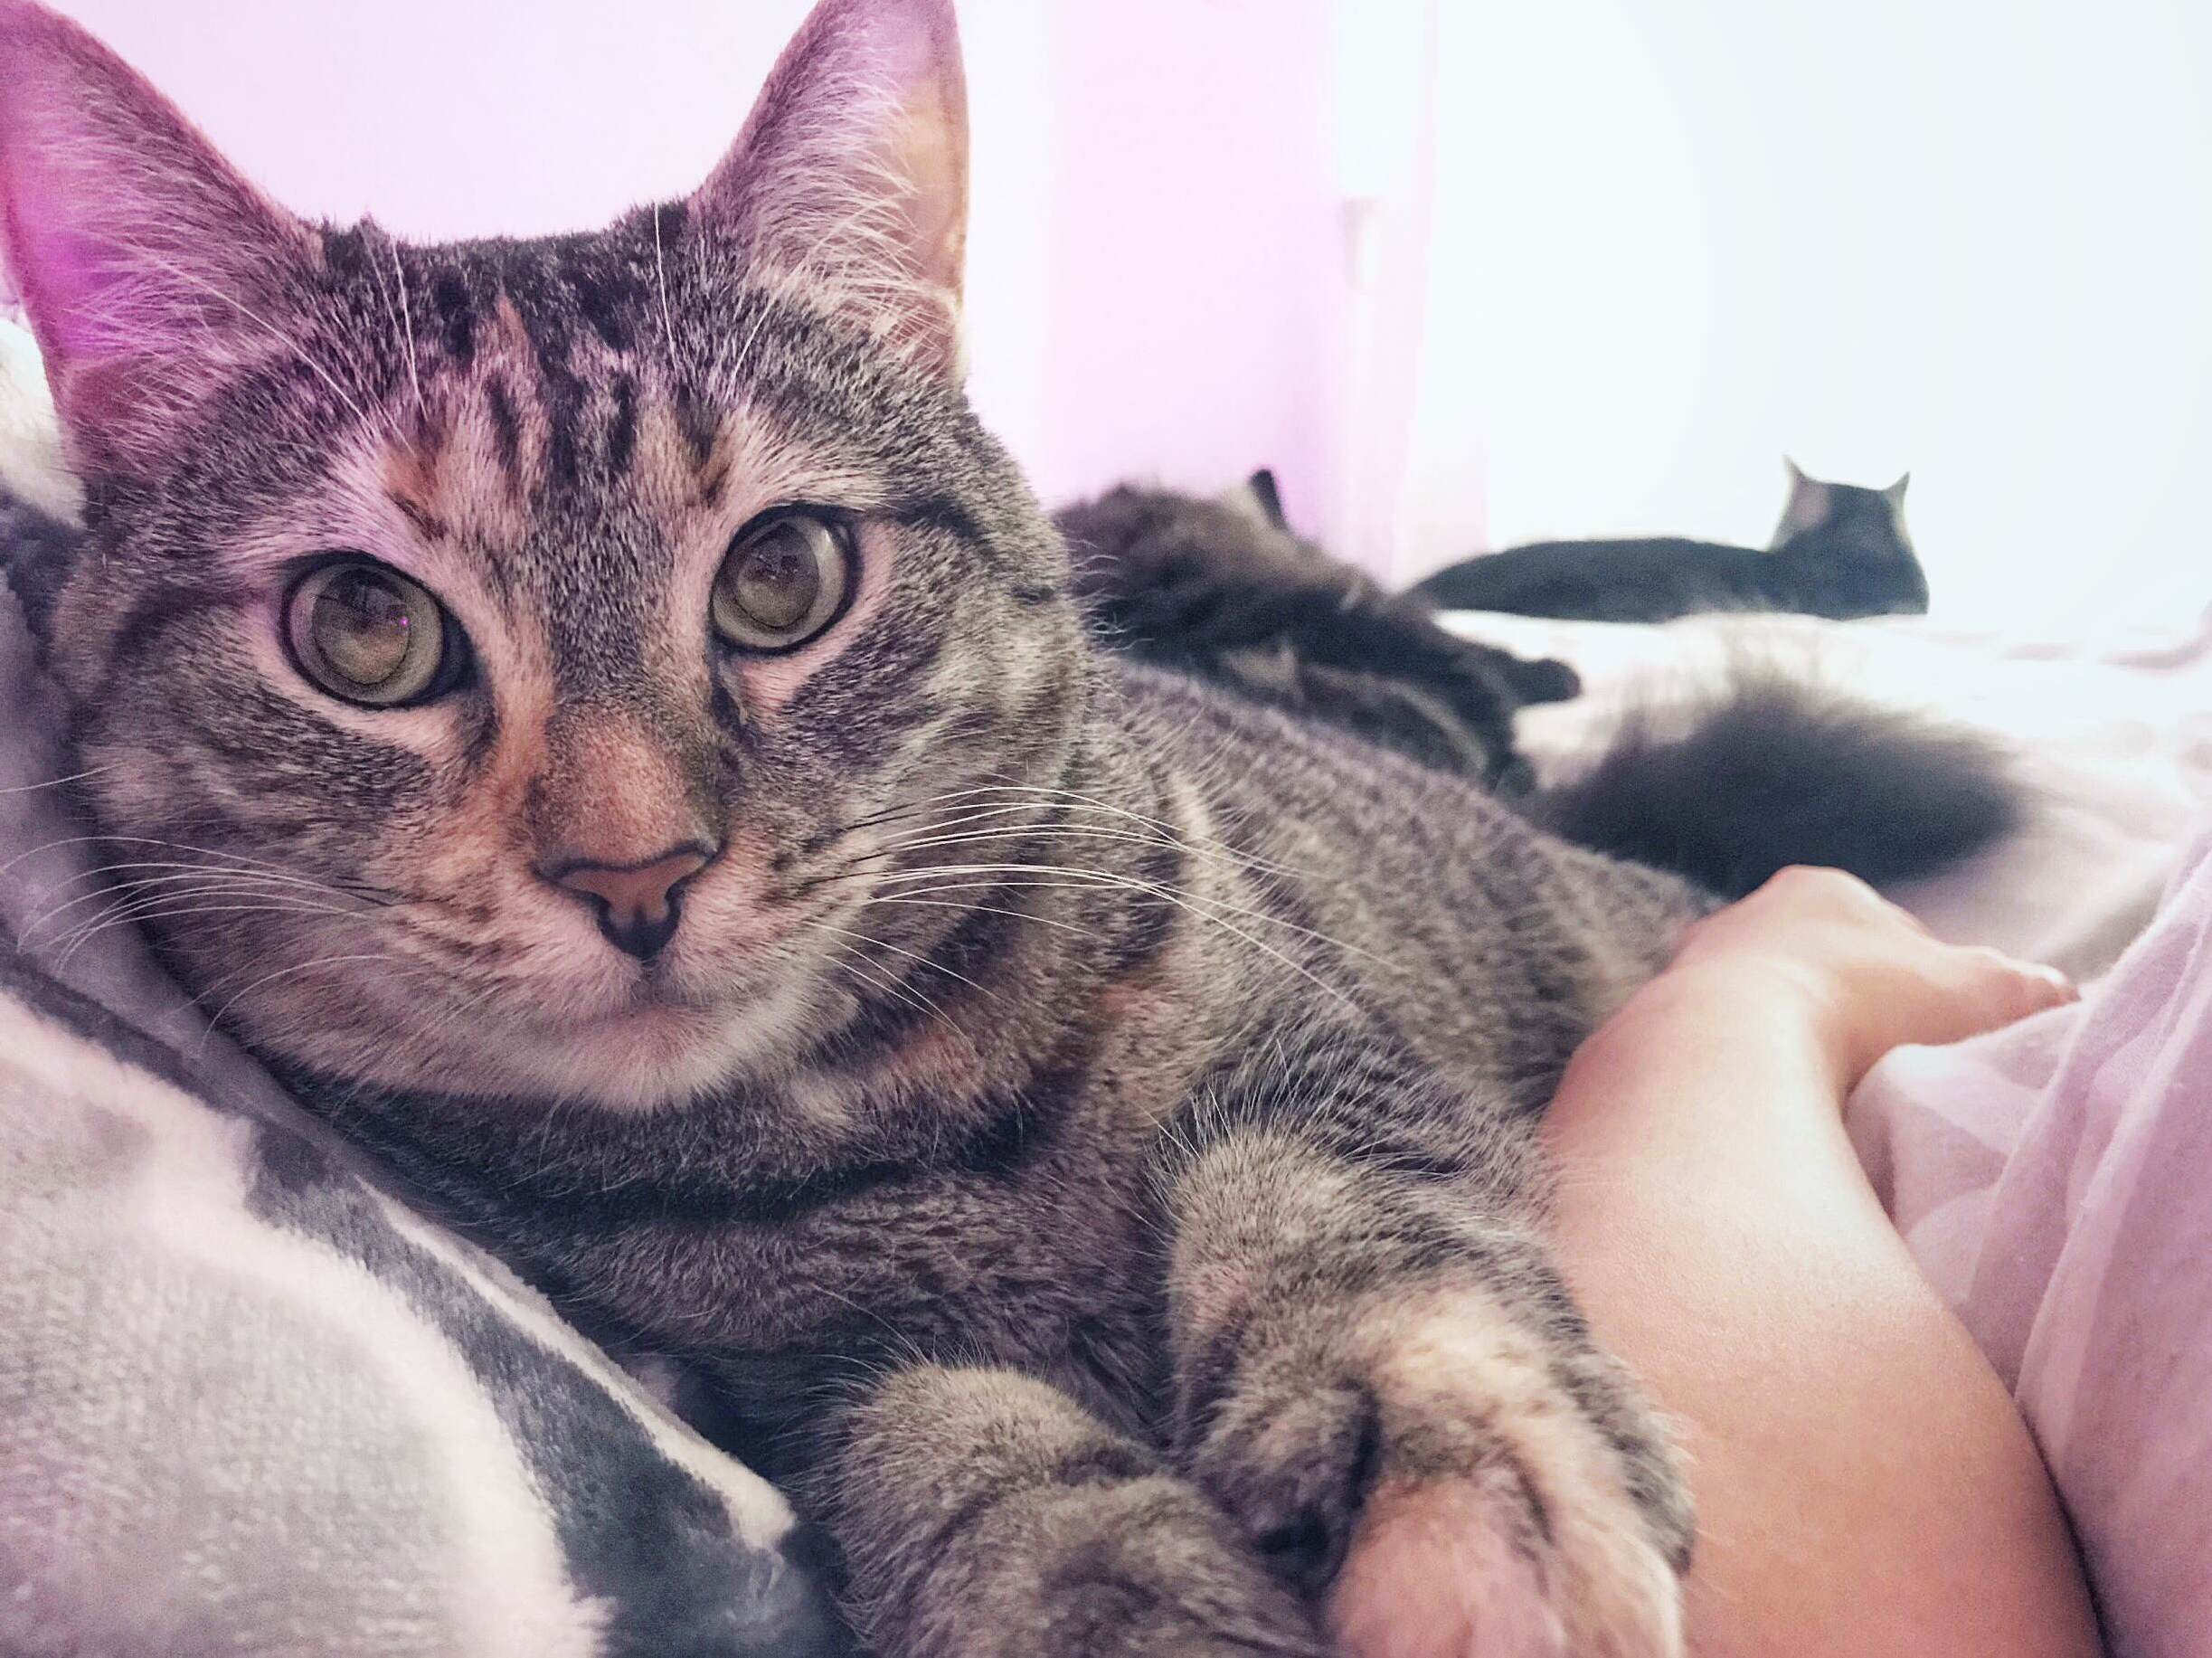 Now this is how you wake up. i love being a cat lady.